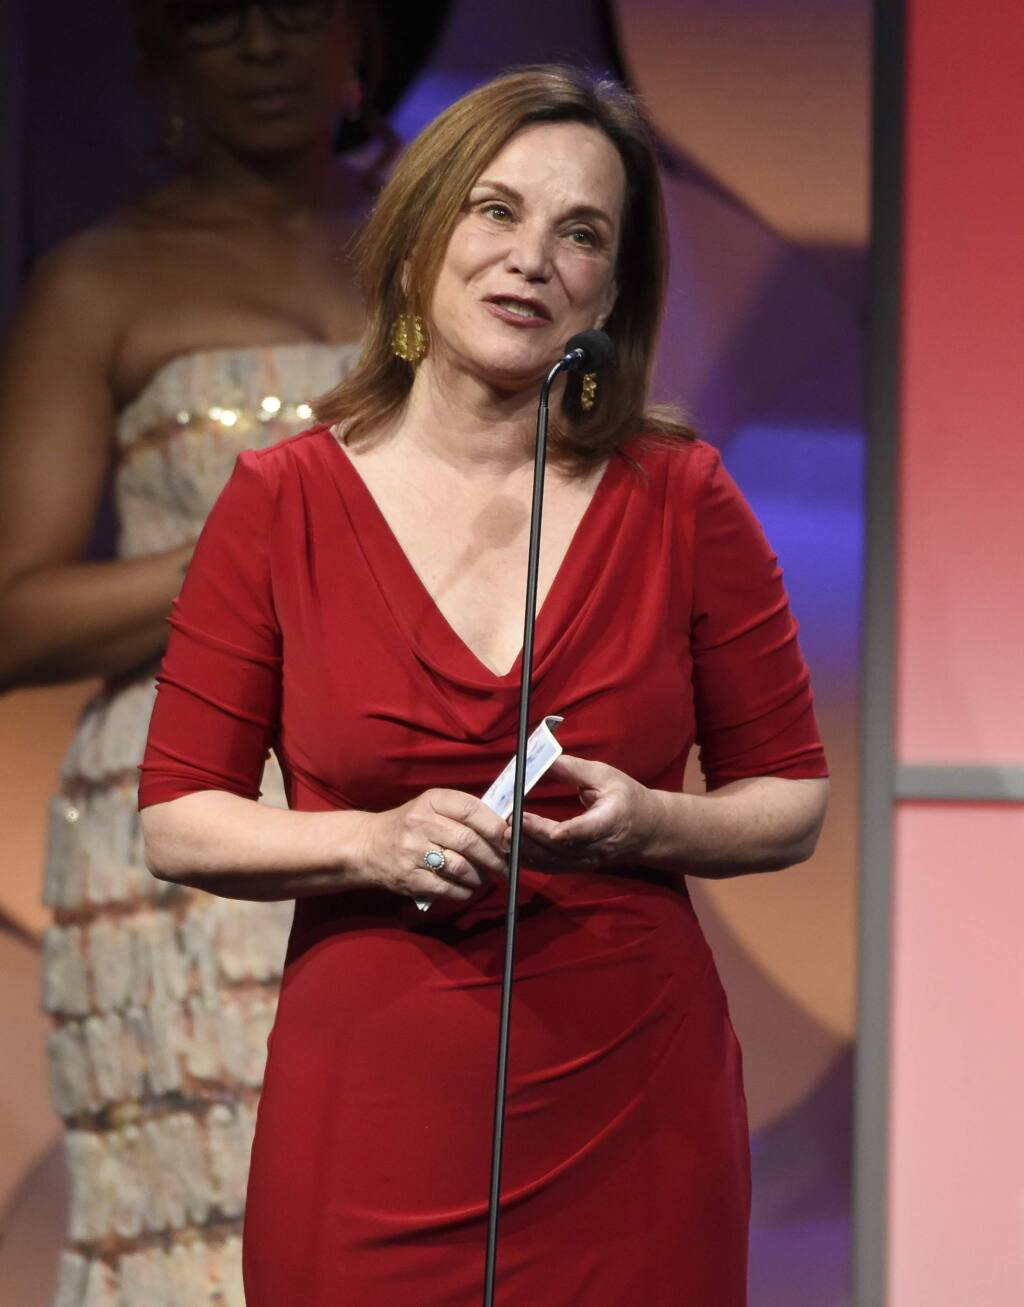 FILE - In this May 19, 2015, file photo, Renee Montagne accepts the award for outstanding individual achievement, news magazine, for NPR's 'Morning Edition' at the 40th Anniversary Gracies Awards at the Beverly Hilton Hotel o in Beverly Hills, Calif. NPR announced July 18, 2016, that Montagne would be stepping down as anchor of the program following the upcoming presidential election. (Photo by Chris Pizzello/Invision/AP, File)